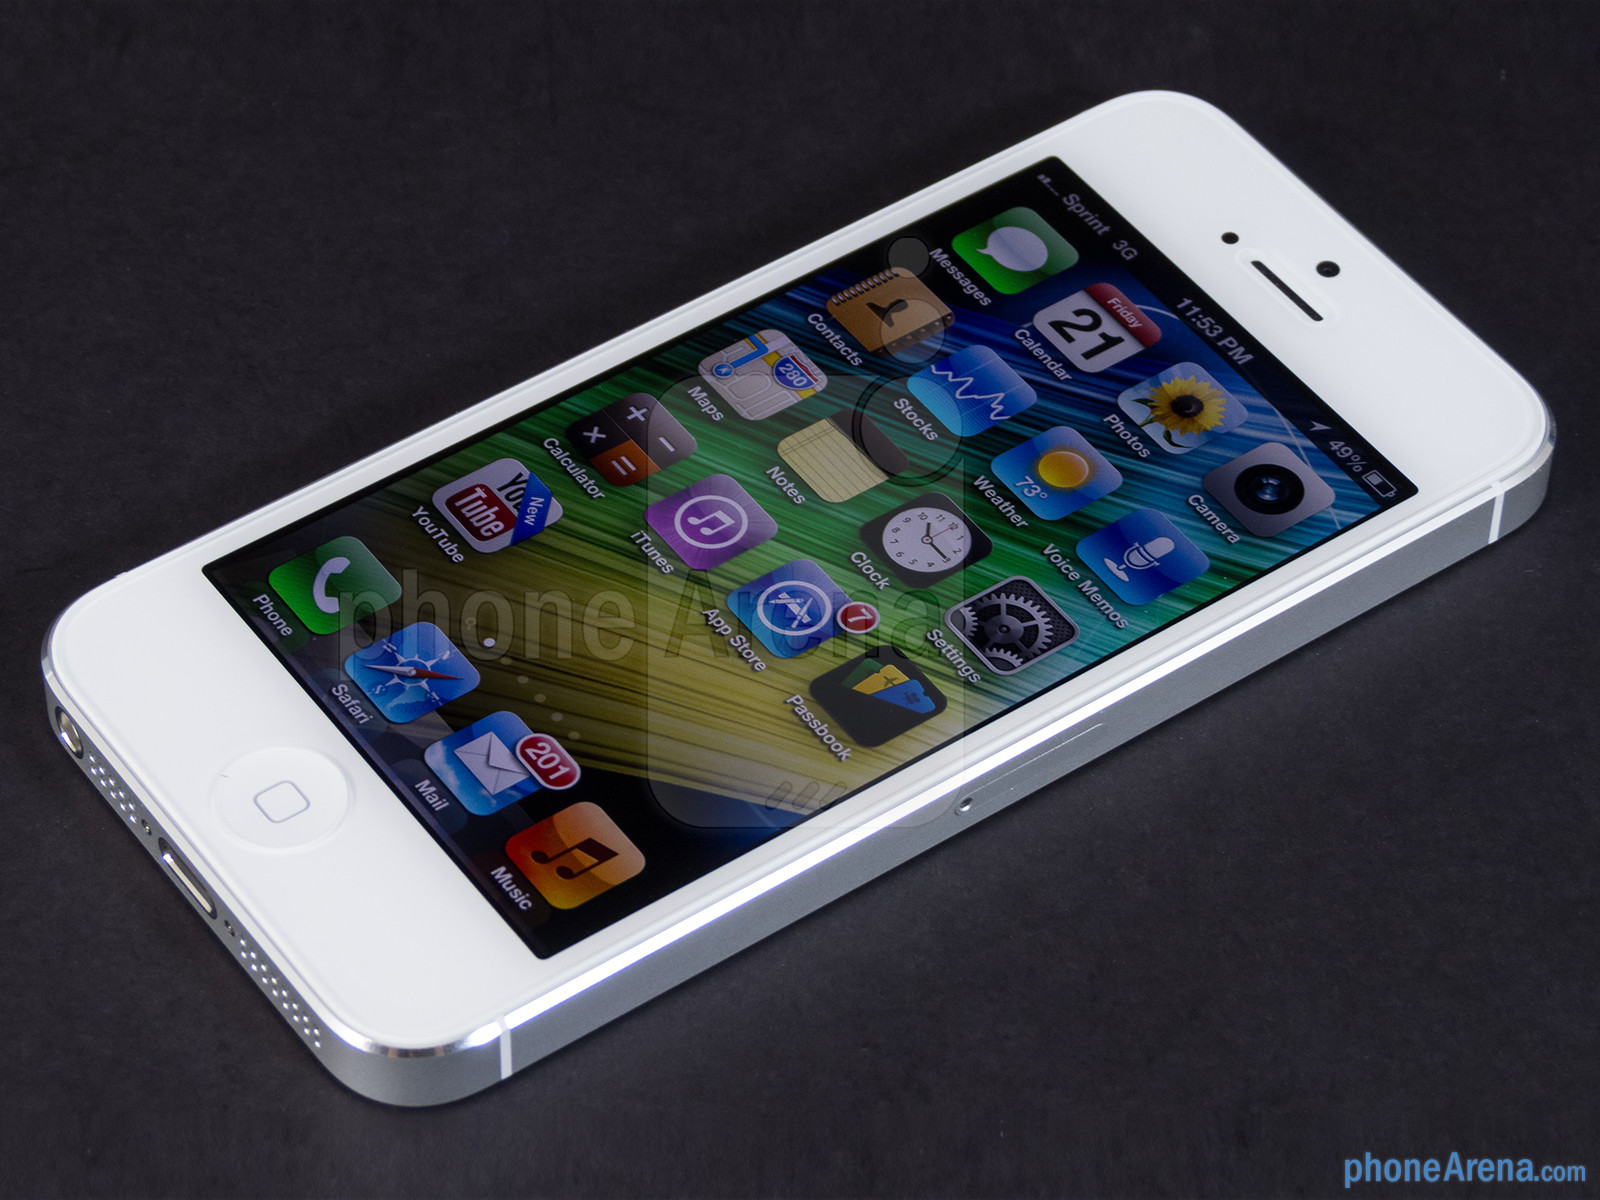 Apple iPhone 5 Review   Call quality  Battery and Conclusion